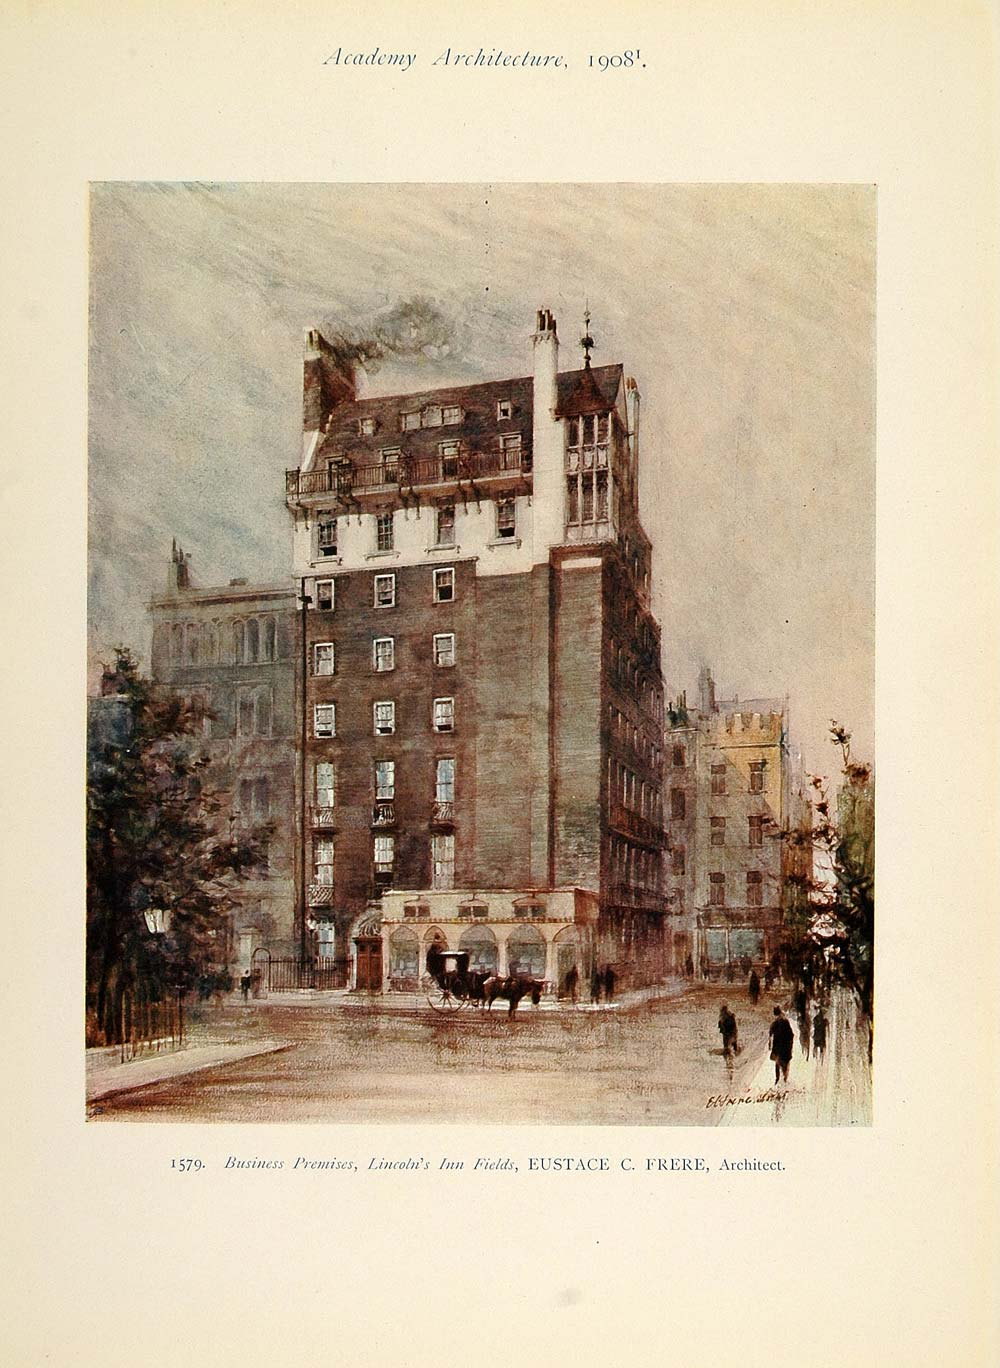 1908 Building Lincoln's Inn Fields Eustace C. Frere - ORIGINAL AD1